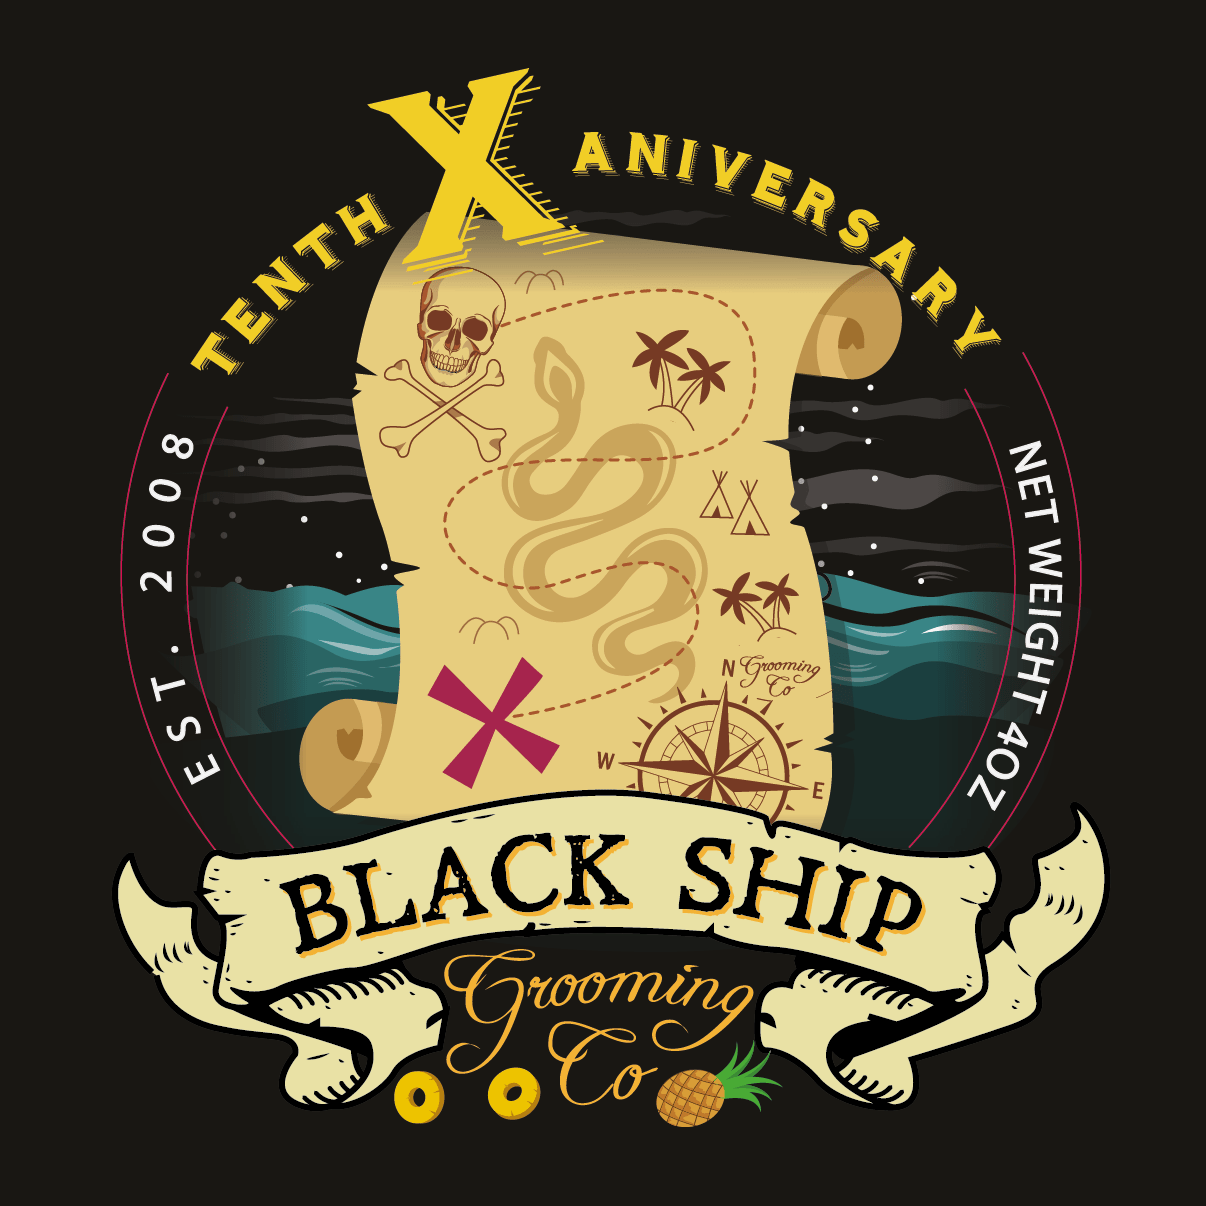 Black Ship Grooming - X - Soap (Vegan) image